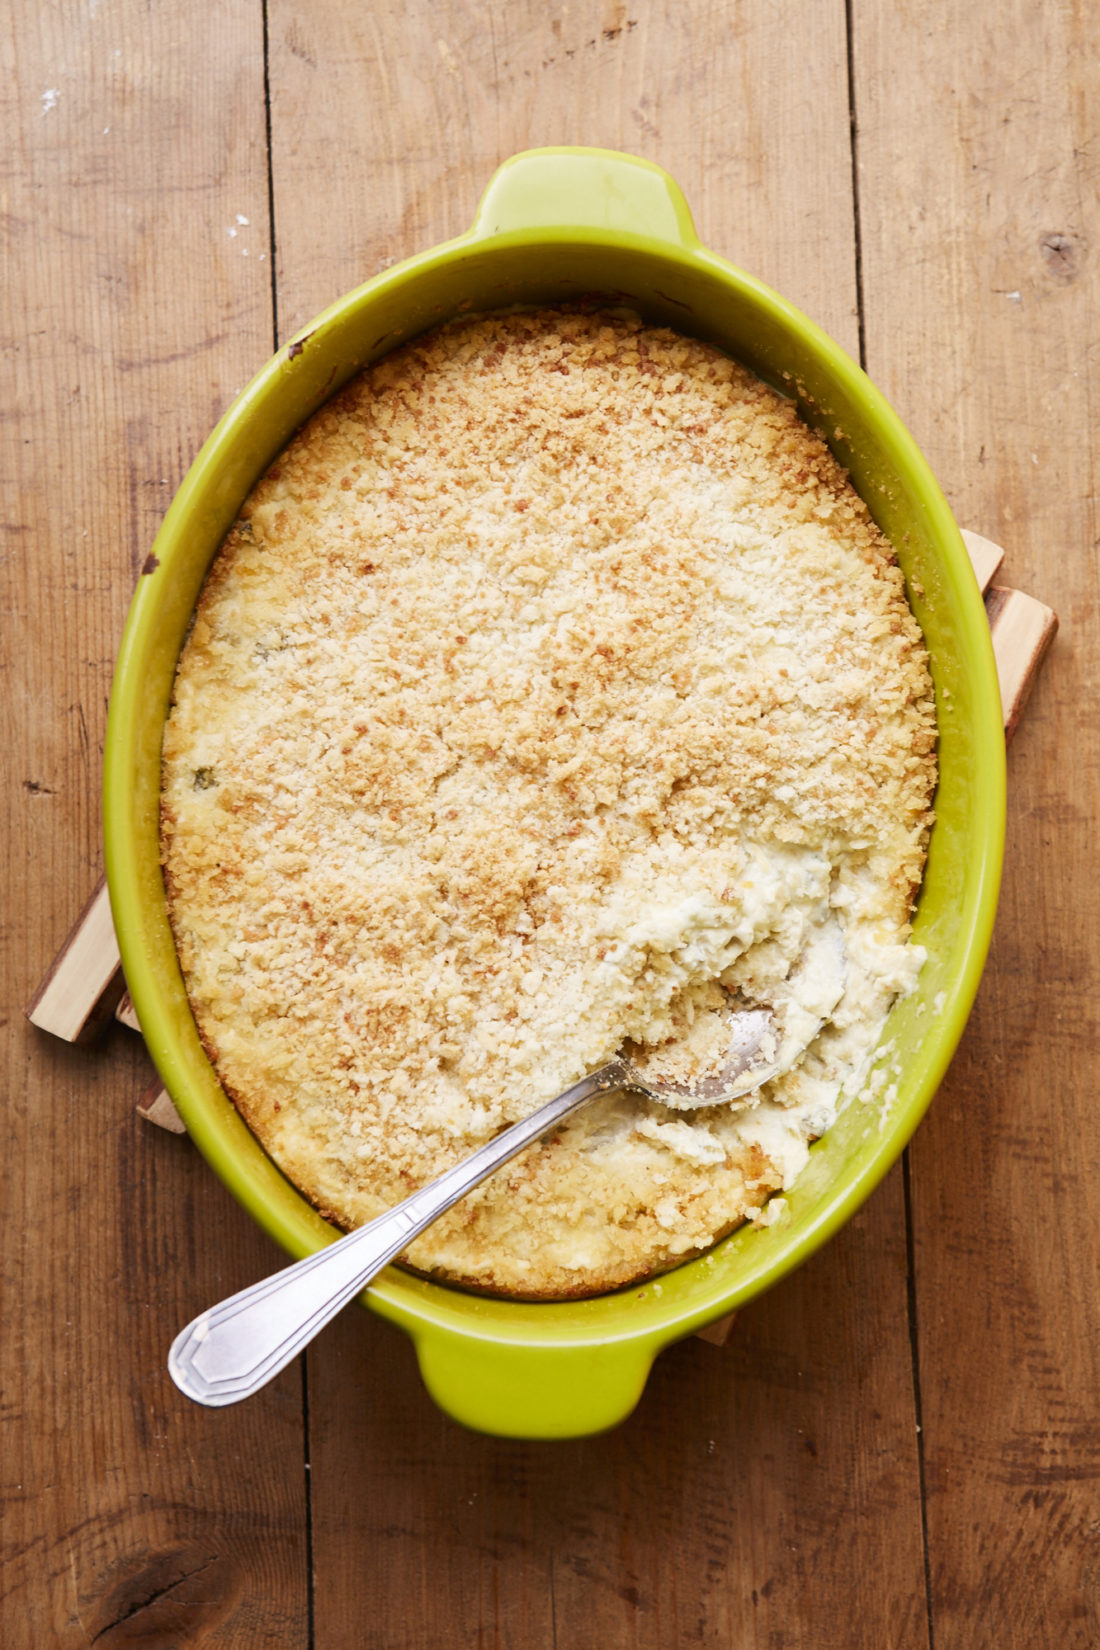 Hot Jalapeno Popper Dip from Katie Workman/ themom100.com. Photo by Evi Abeler